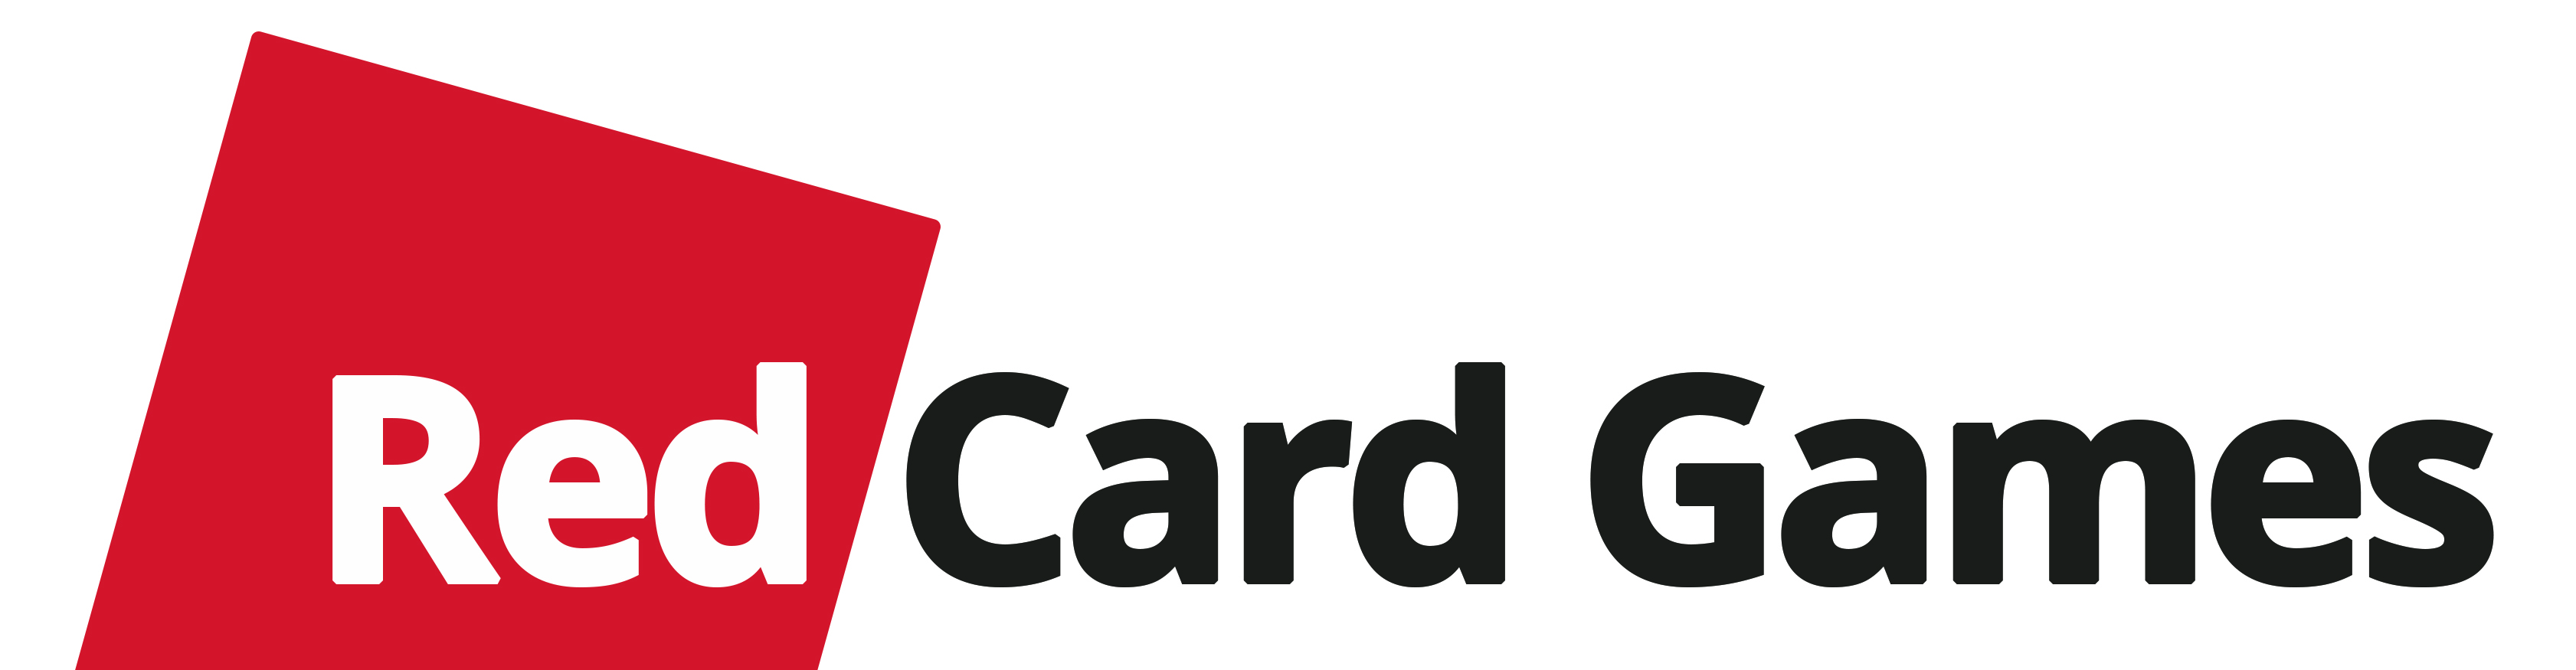 Red Card Games Logo